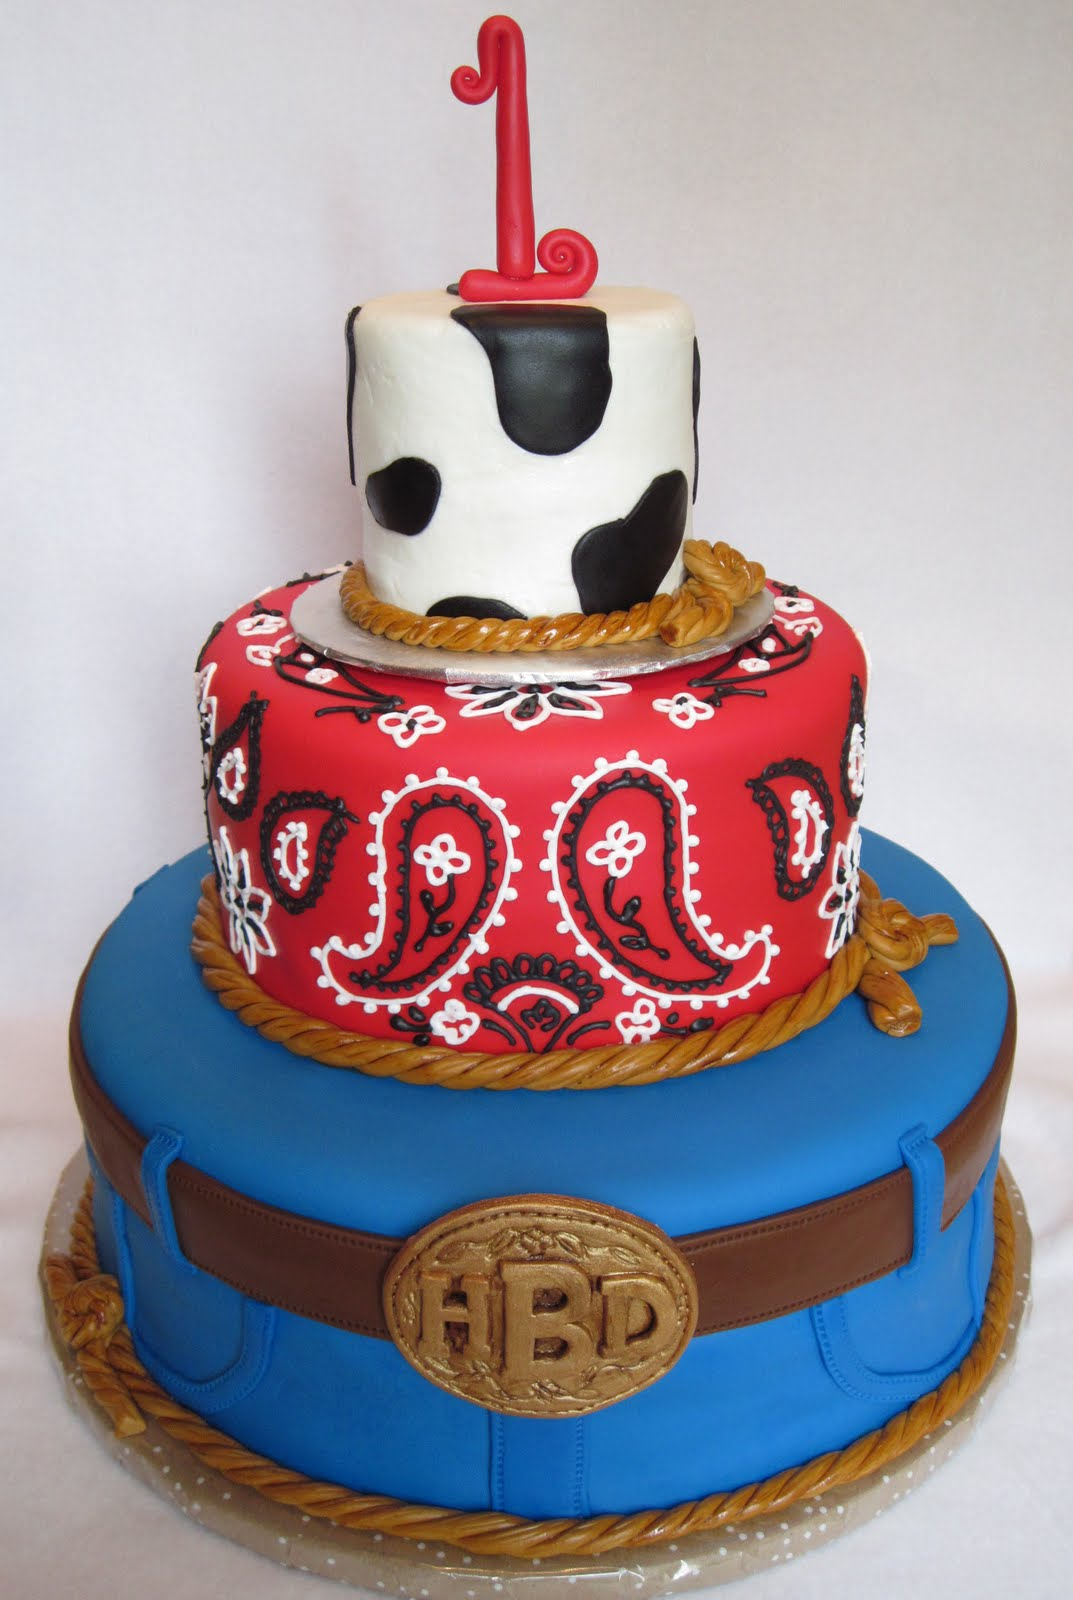 Western Cakes submited images